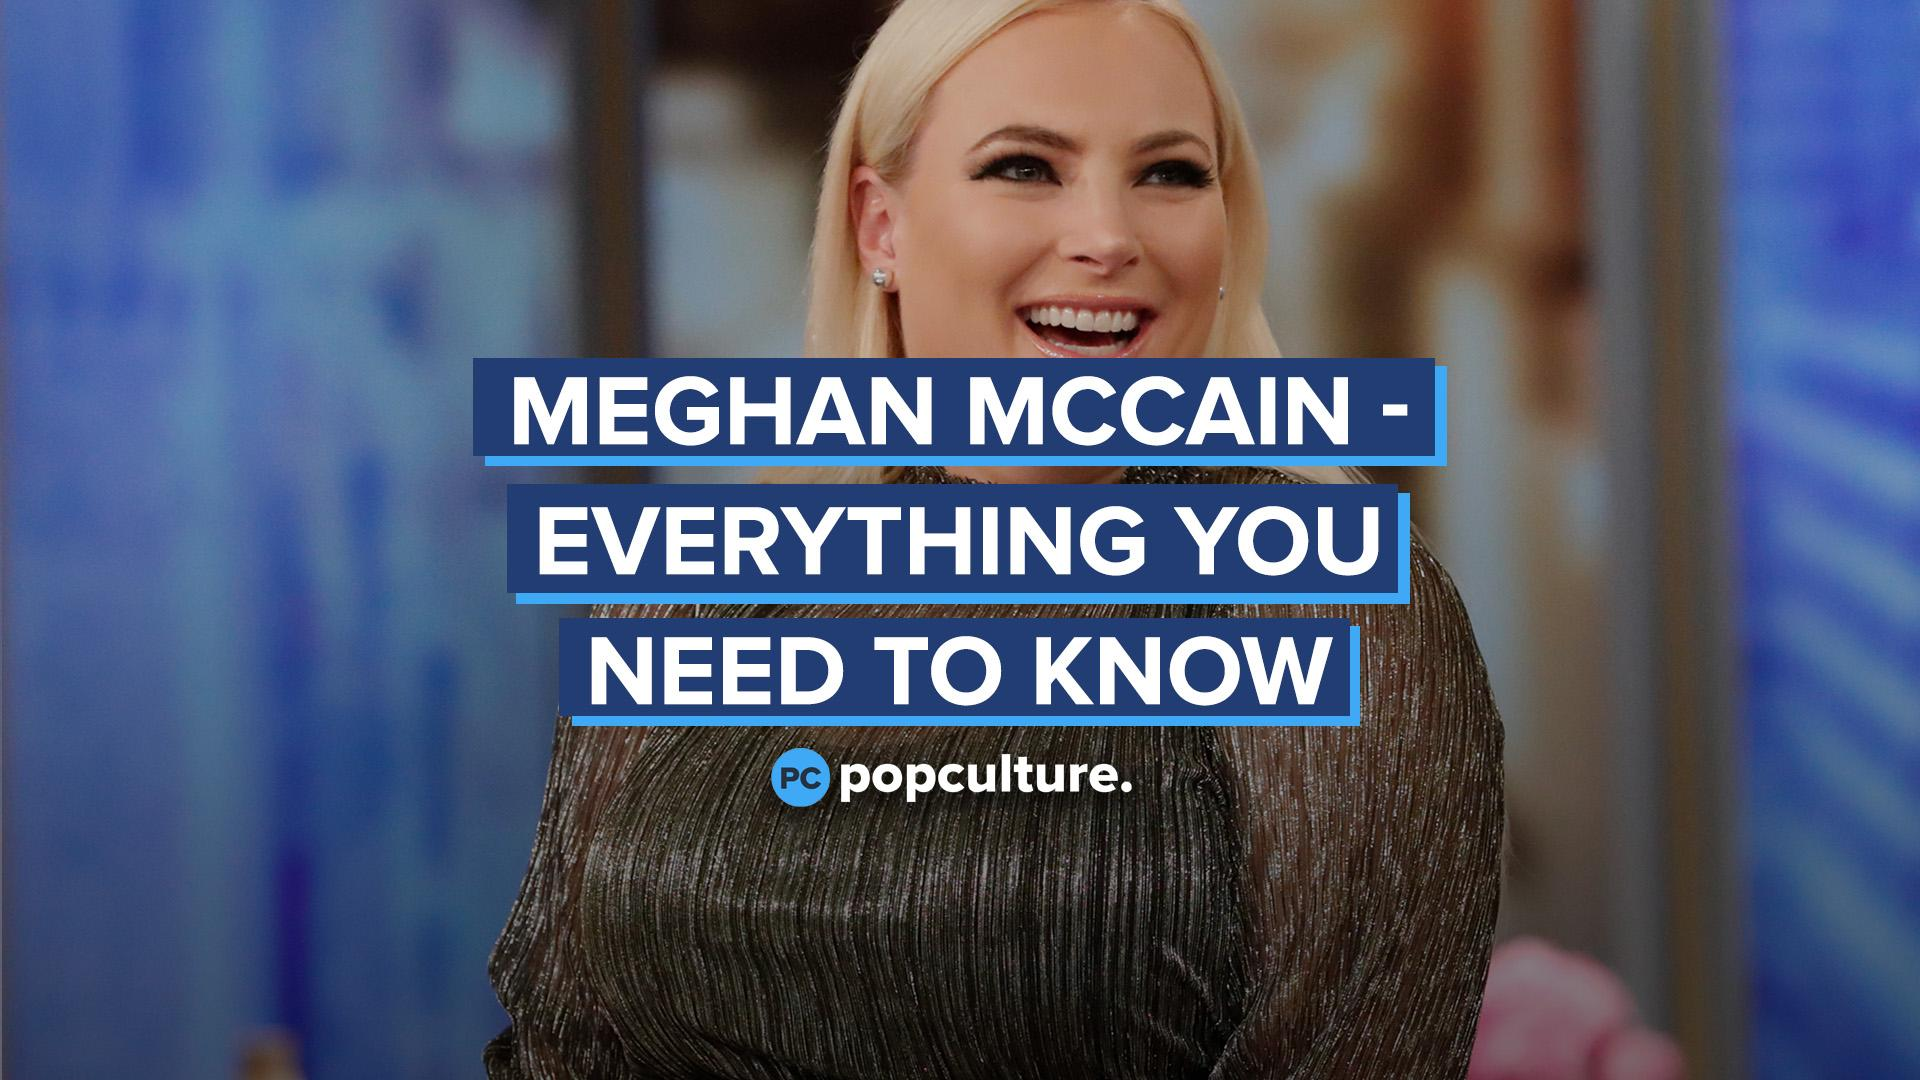 Meghan McCain - Everything You Need to Know screen capture